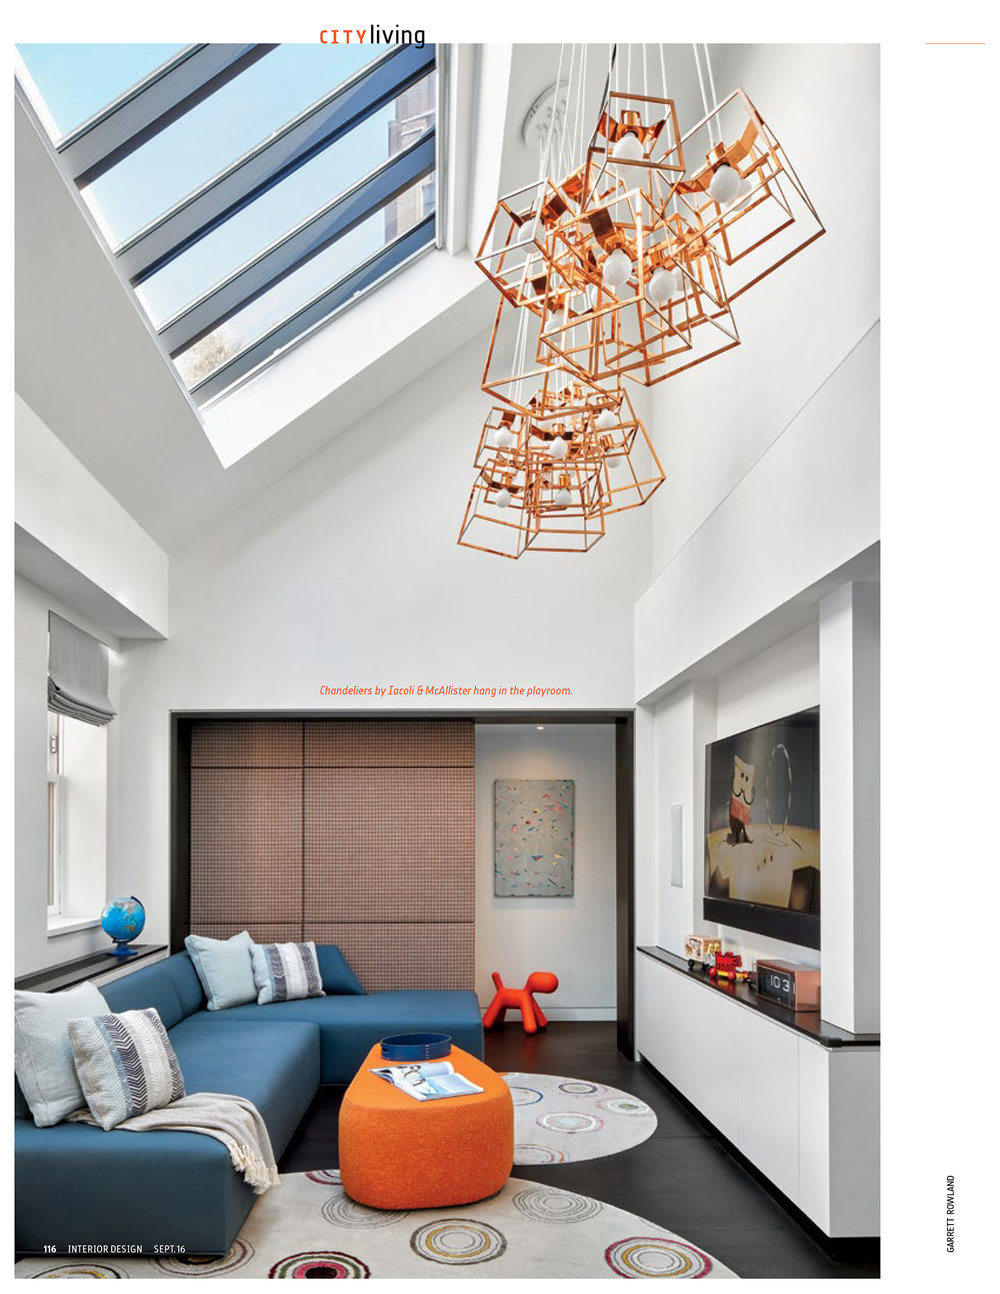 Design by Damon Liss Design / Photo by Garrett Rowland for Interior Design Magazine